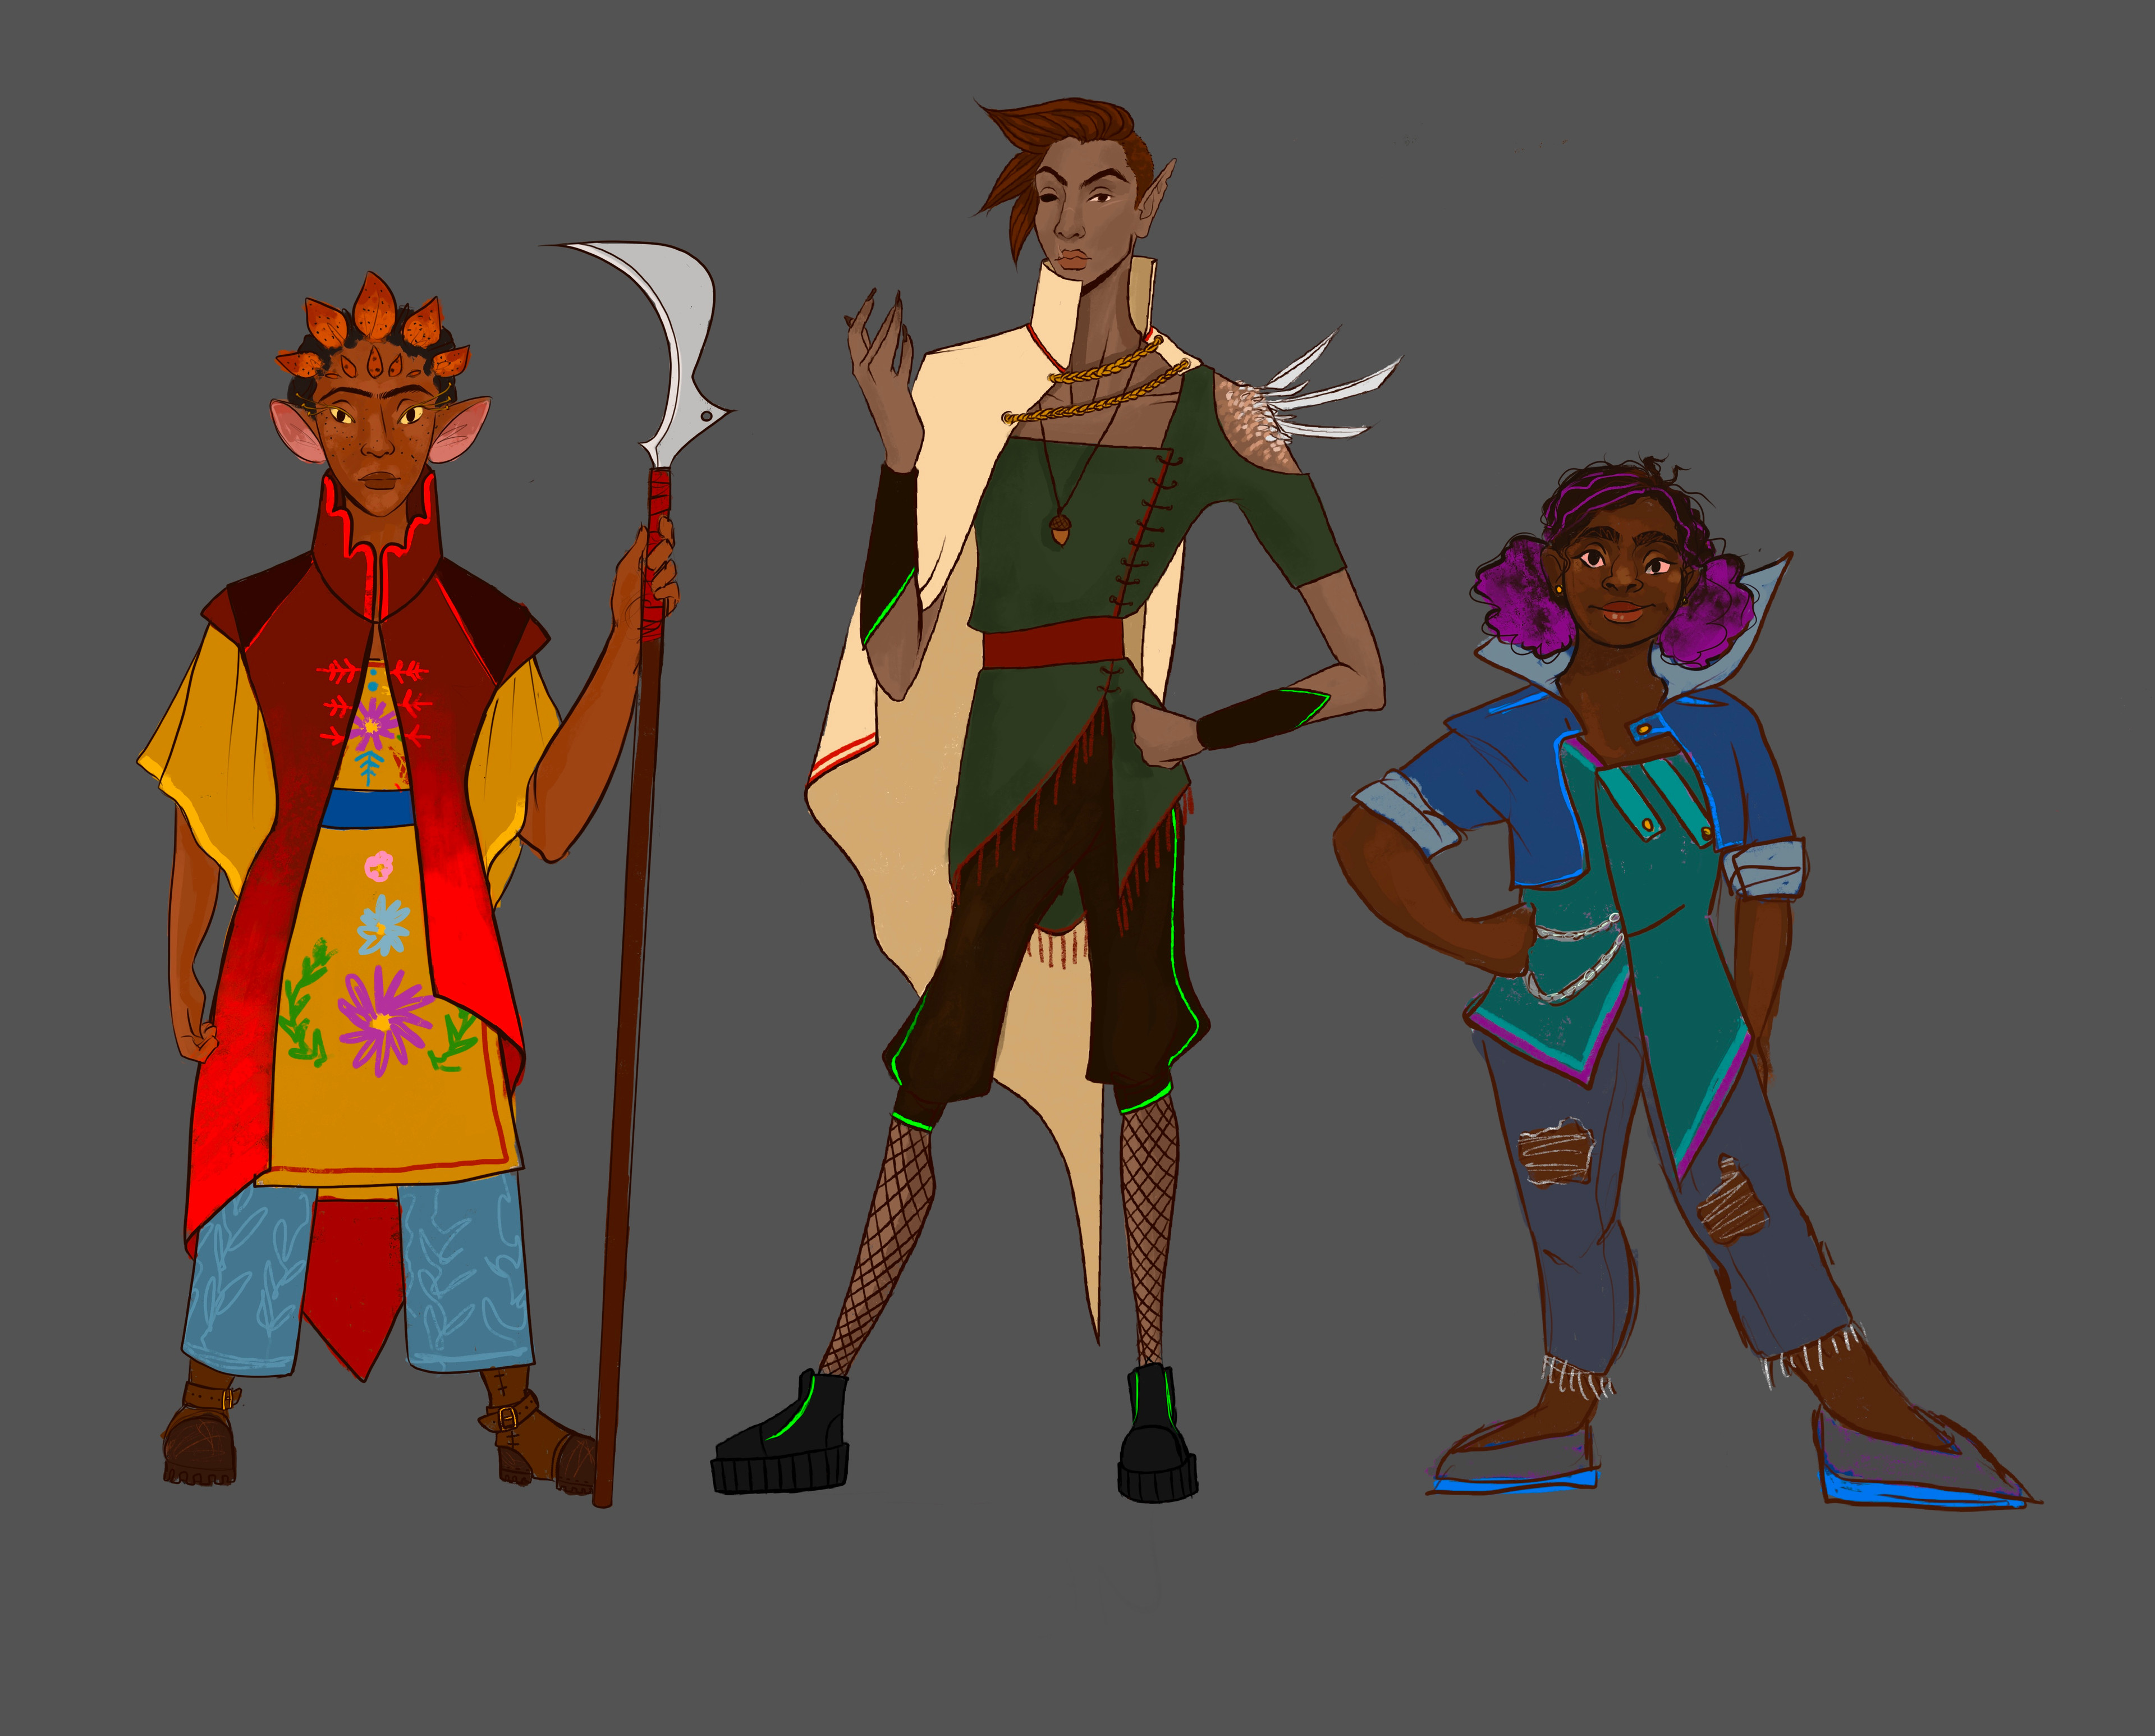 Lineup of the three character designs!